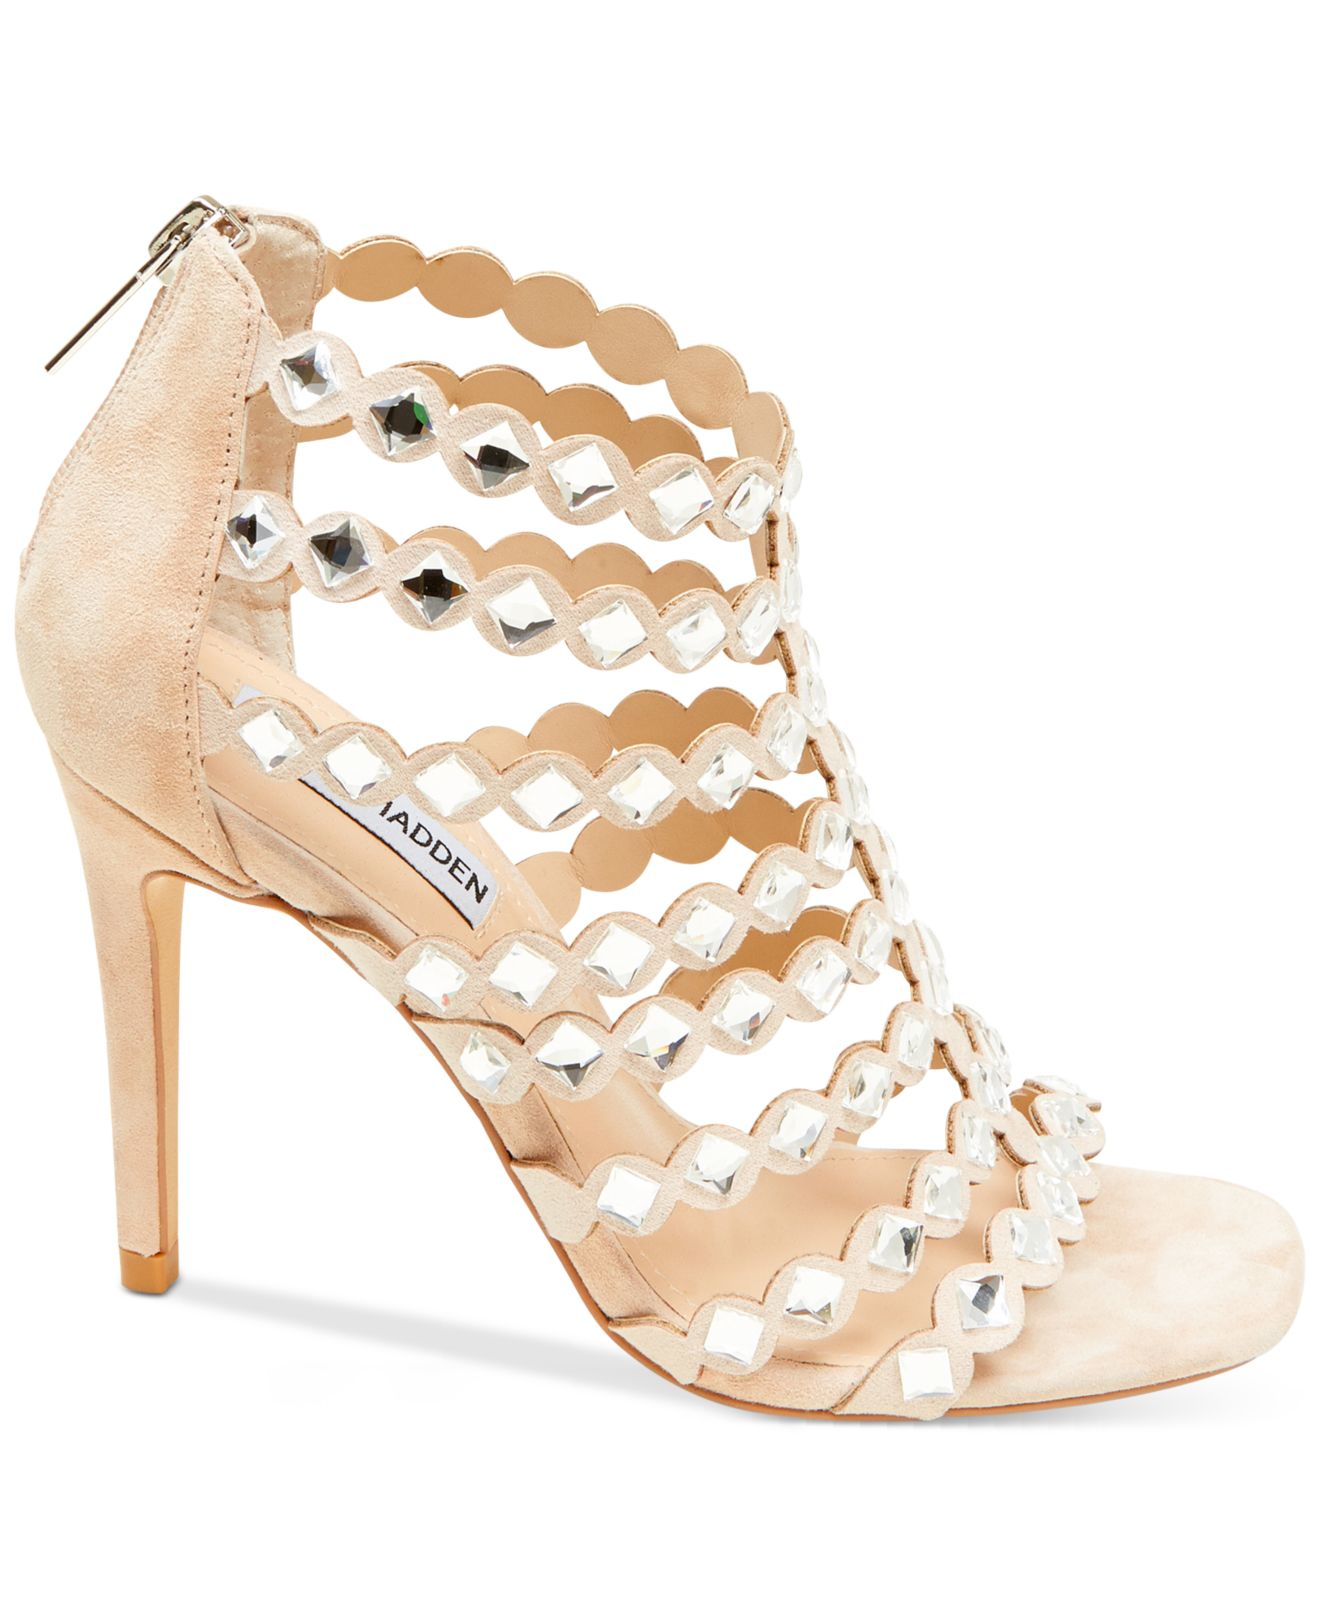 70adcfbd50a Lyst - Steve Madden Women s Shinning Cage Sandals in Pink